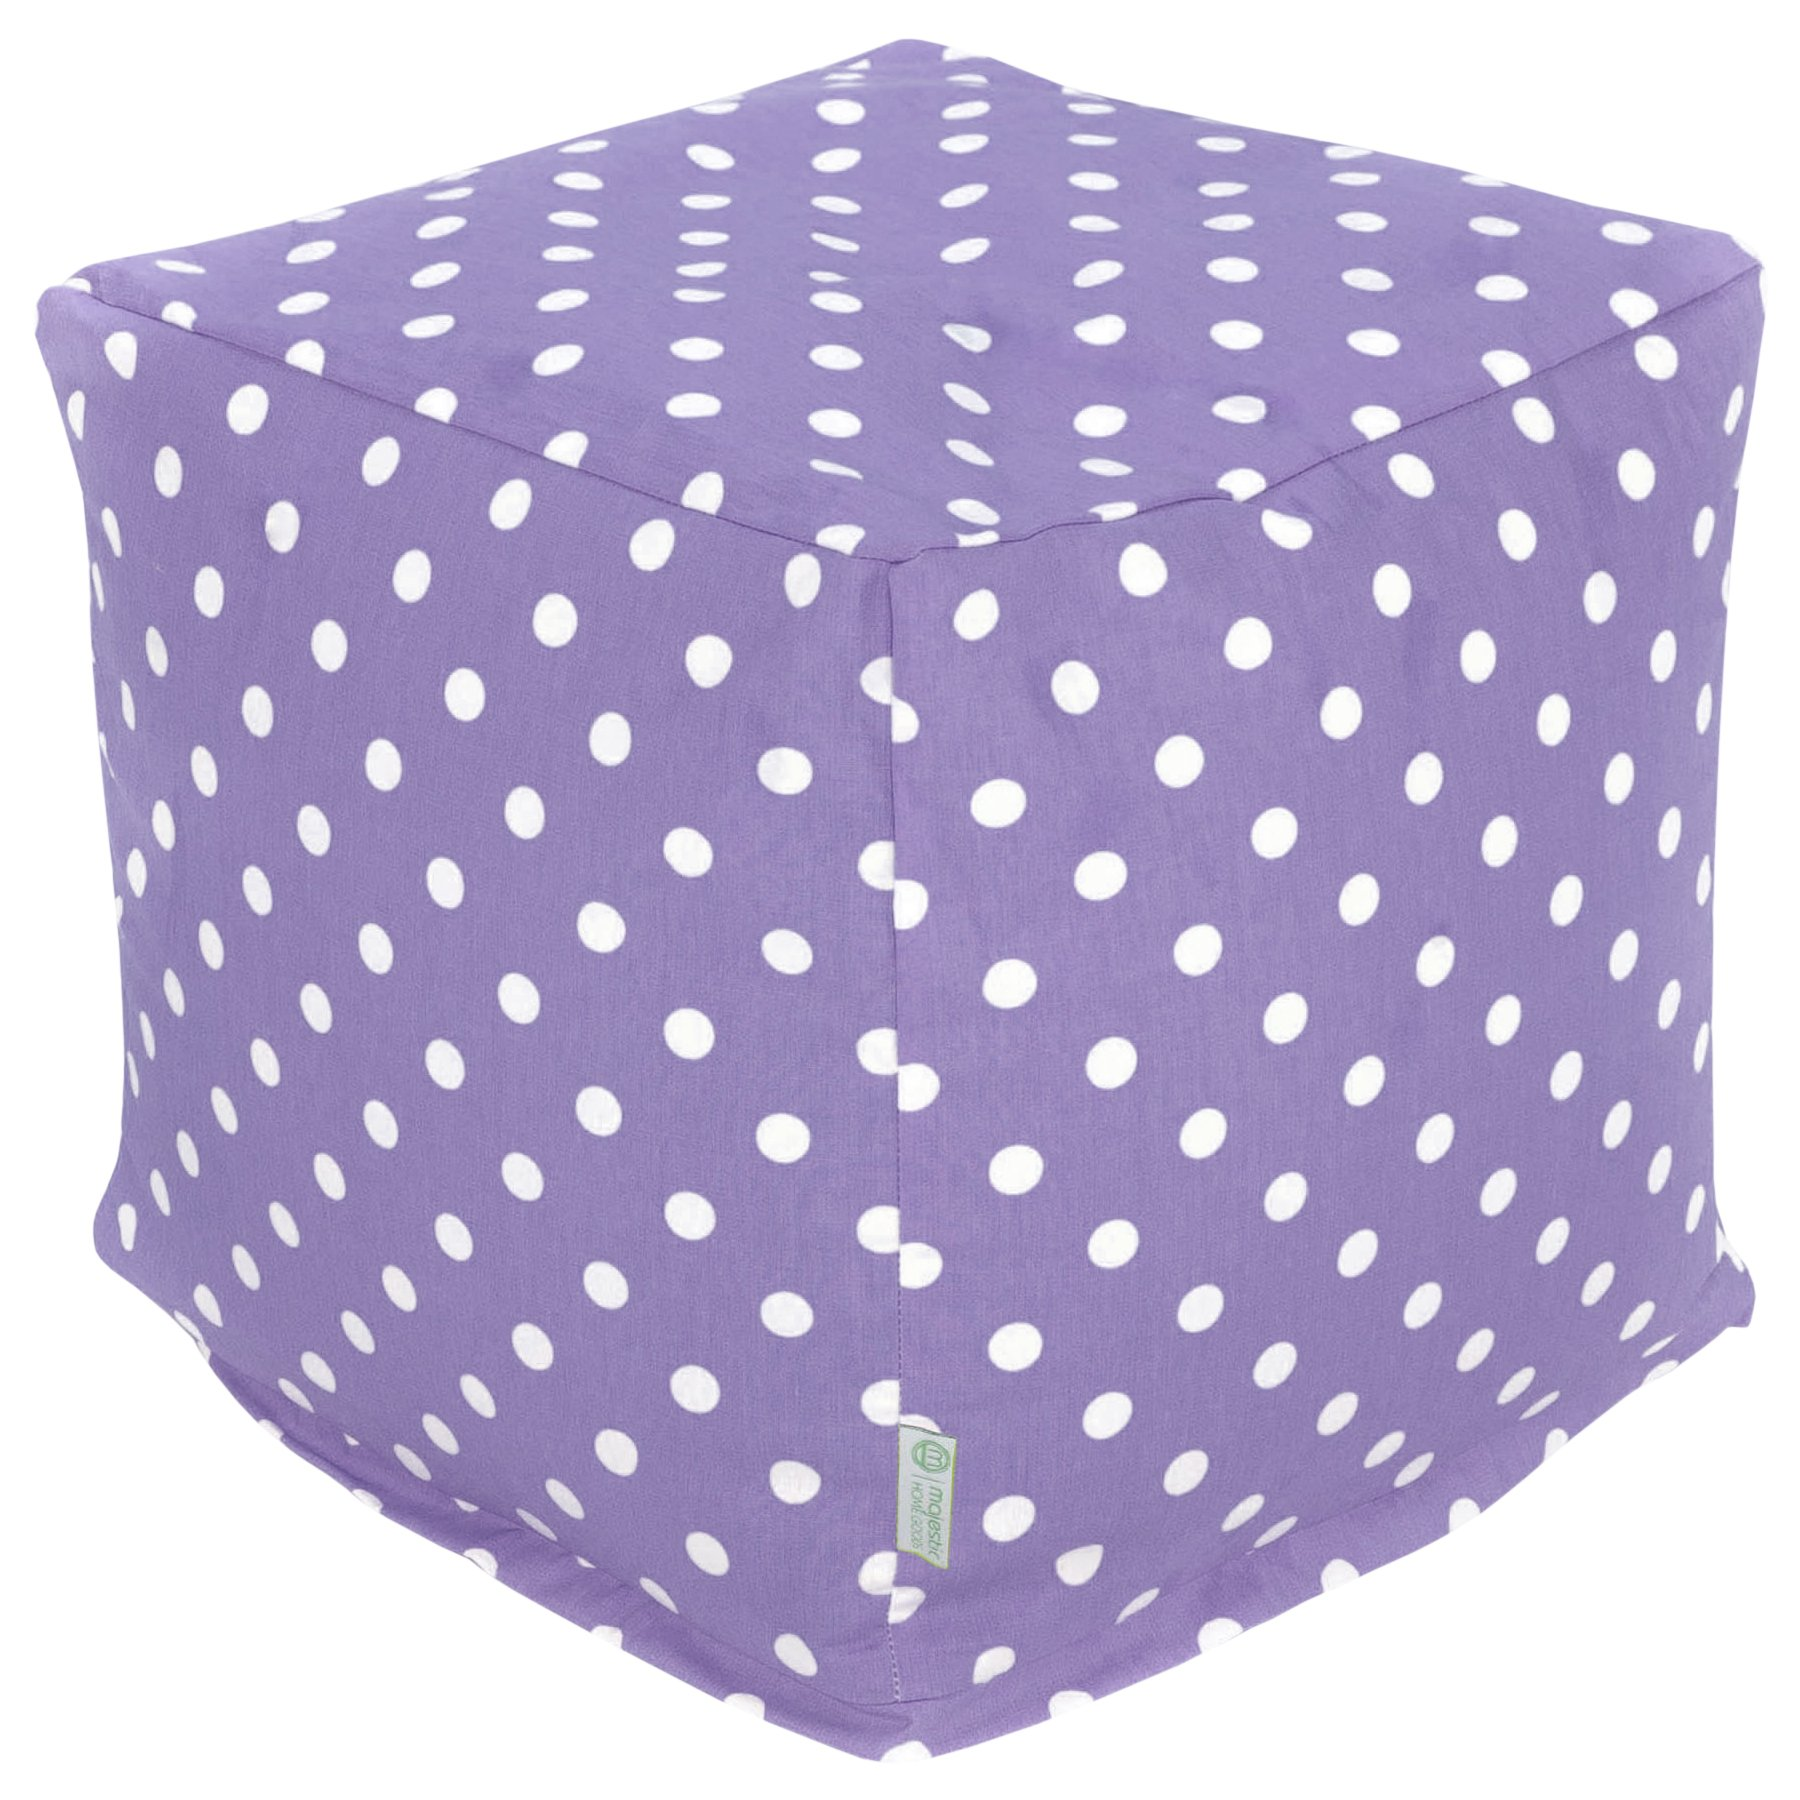 Majestic Home Goods Lavender Small Polka Dot Indoor Bean Bag Ottoman Pouf Cube 17'' L x 17'' W x 17'' H